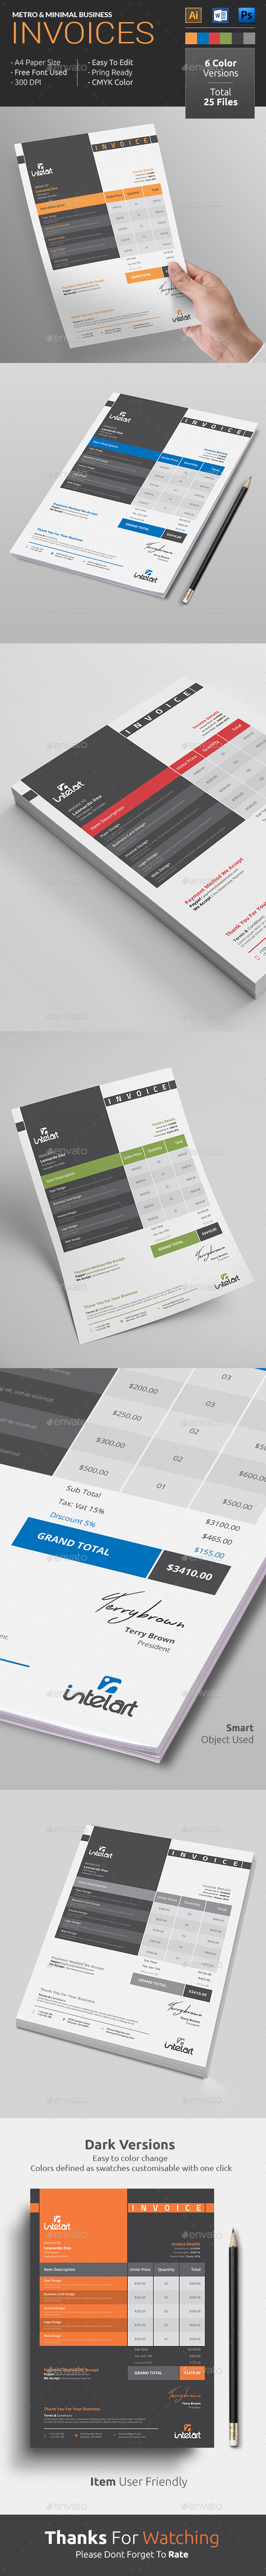 proposal template for word%0A Flat  Modern but Stylish Invoice Template available in DOC  u     DOCX PSD  u     AI